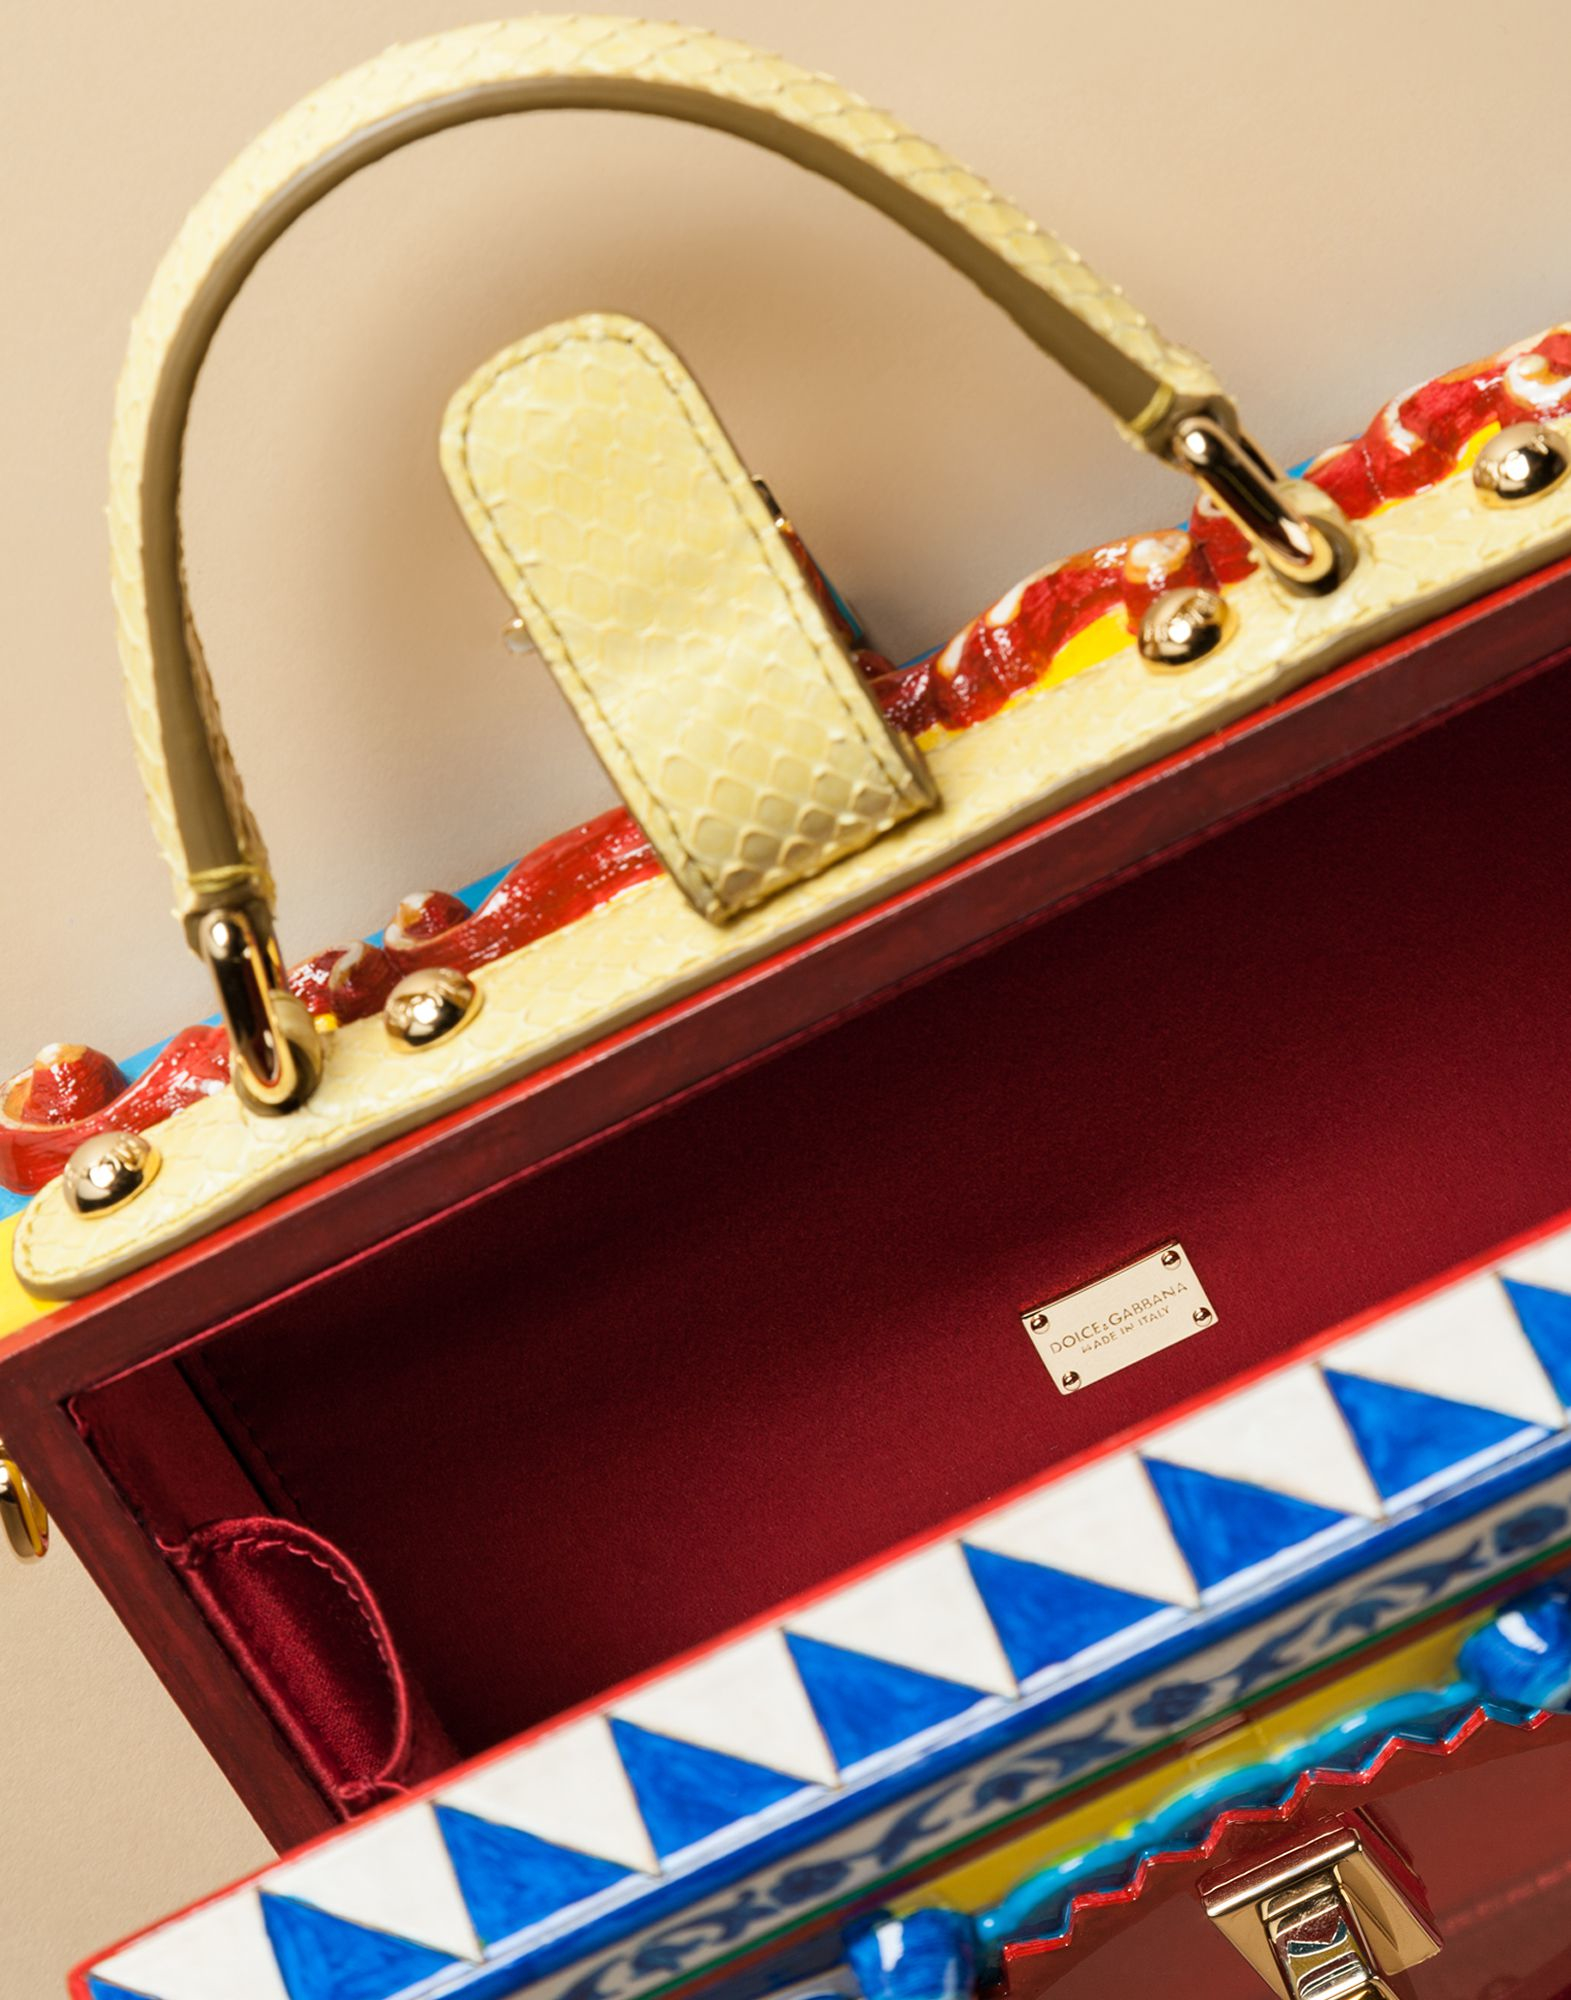 fe47fdfe899a Dolce   Gabbana Dolce Box Pasticceria Bag In Hand-painted Wood in ...